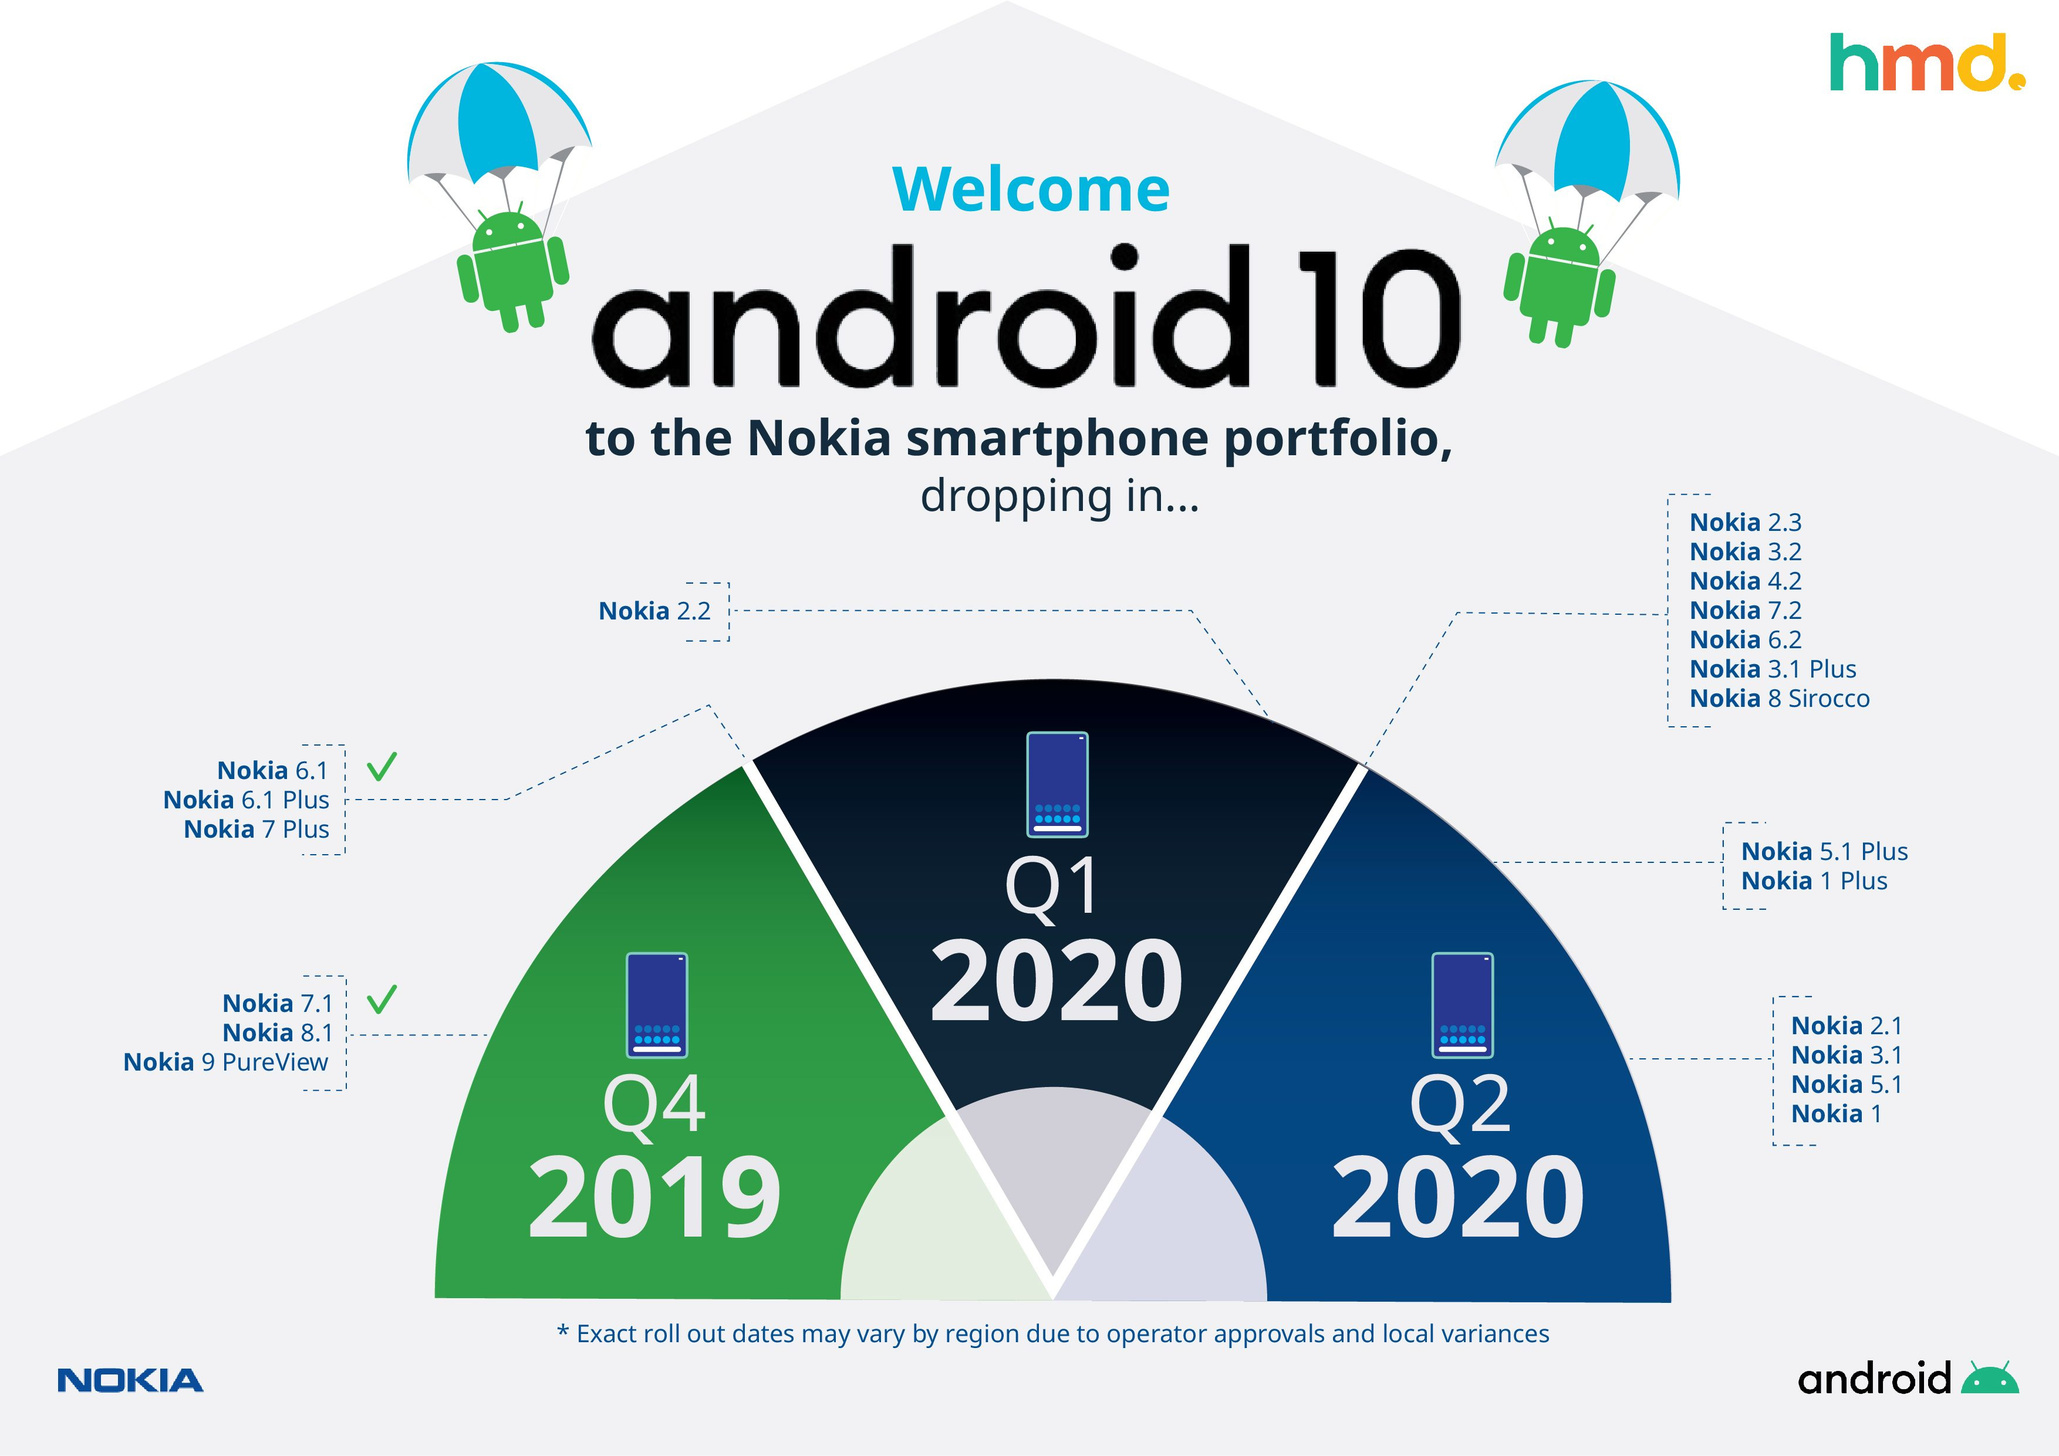 nokia_android_10_revised_schedule_1.jpg